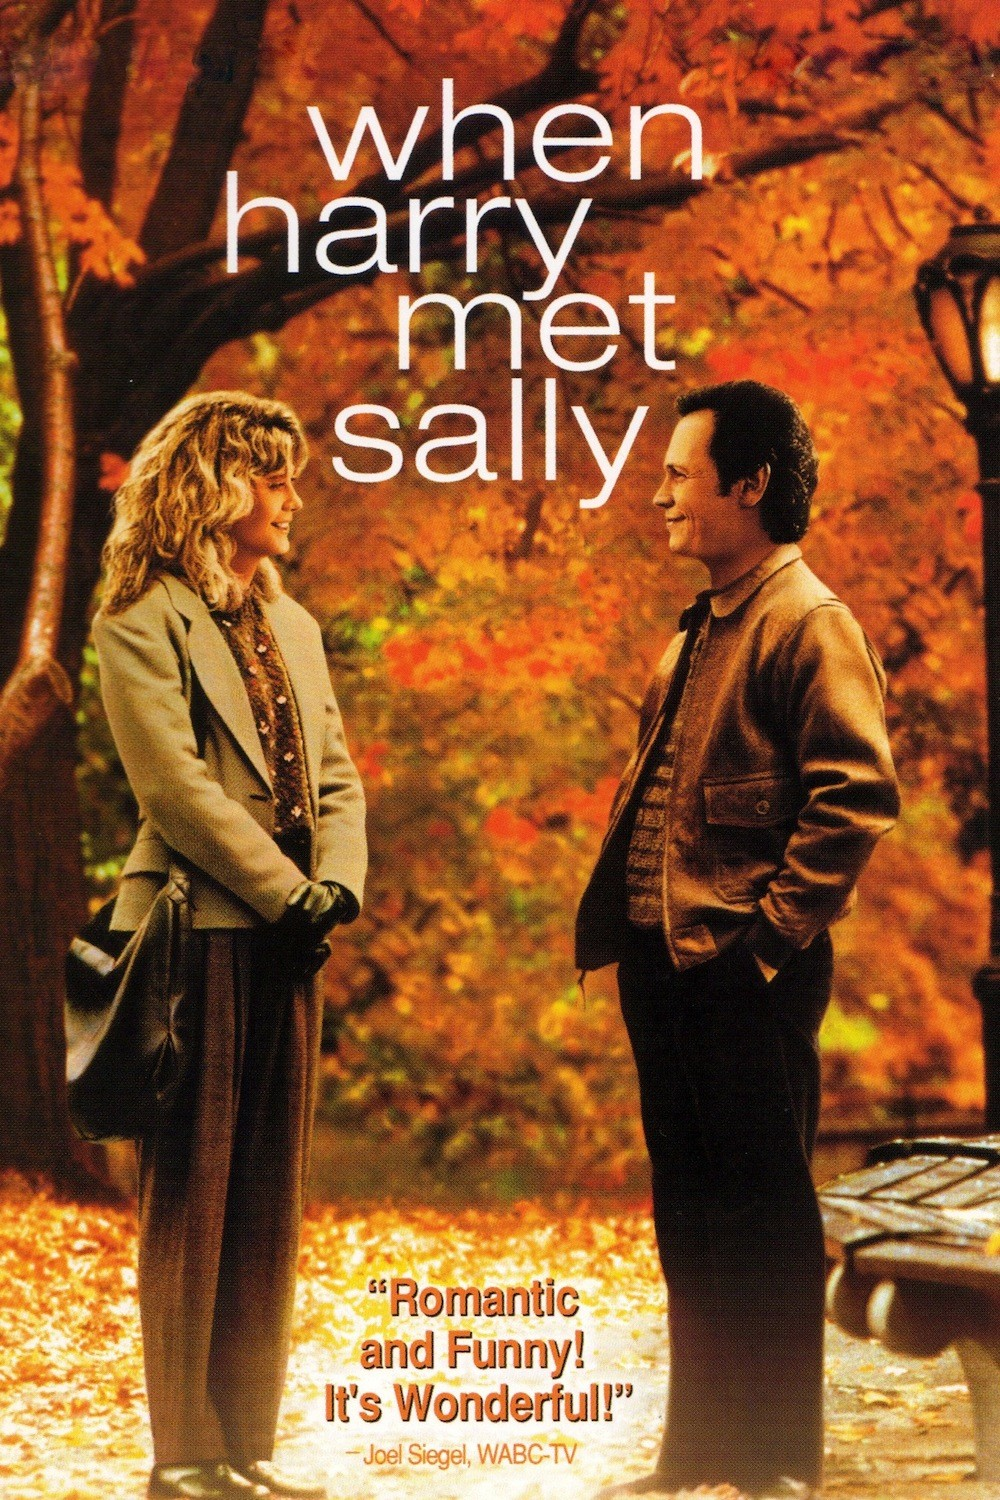 WHEN HARRY MEET SALLY